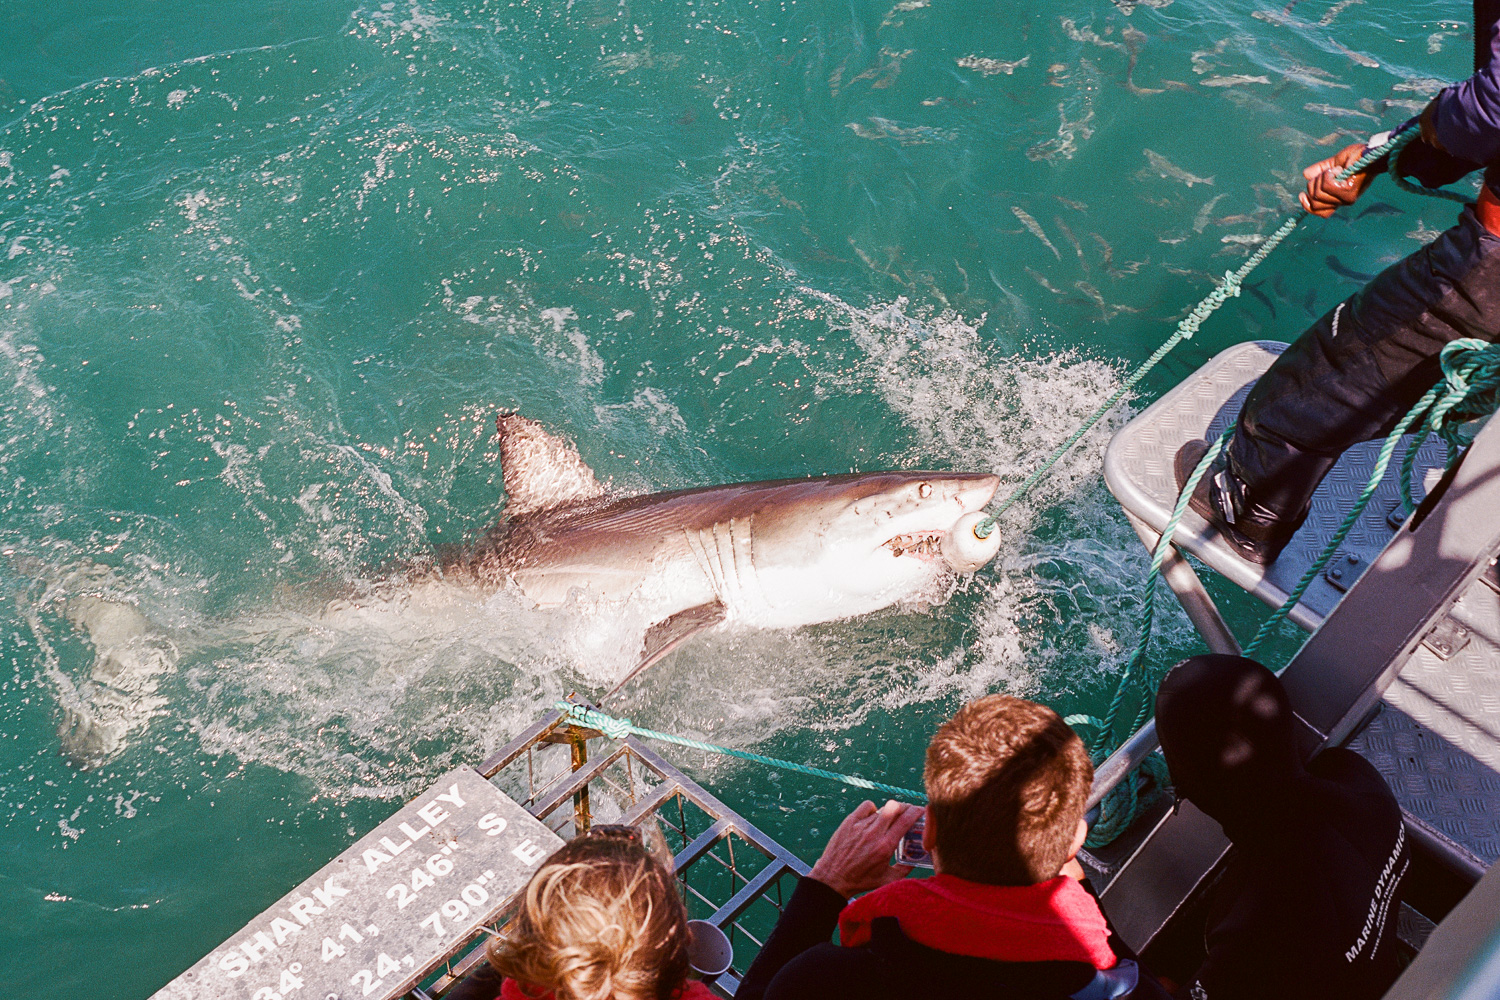 Our expert chummer got his ball of fish-heads stuck inside a Great White Shark.